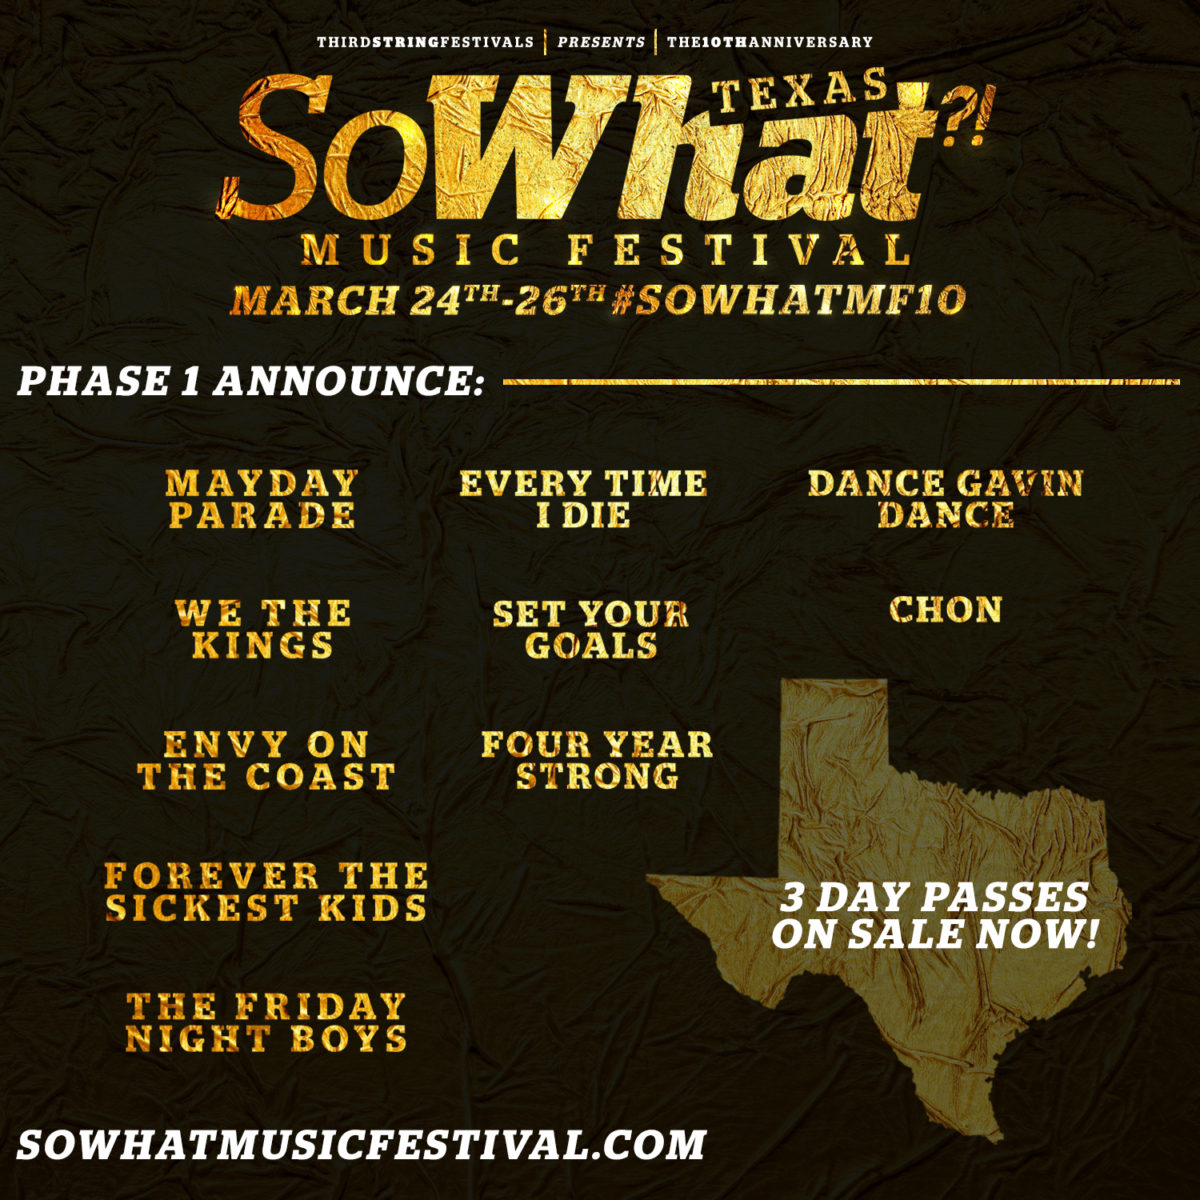 So What?! Music Festival Announces First 10 Bands For 10 Year Anniversary!